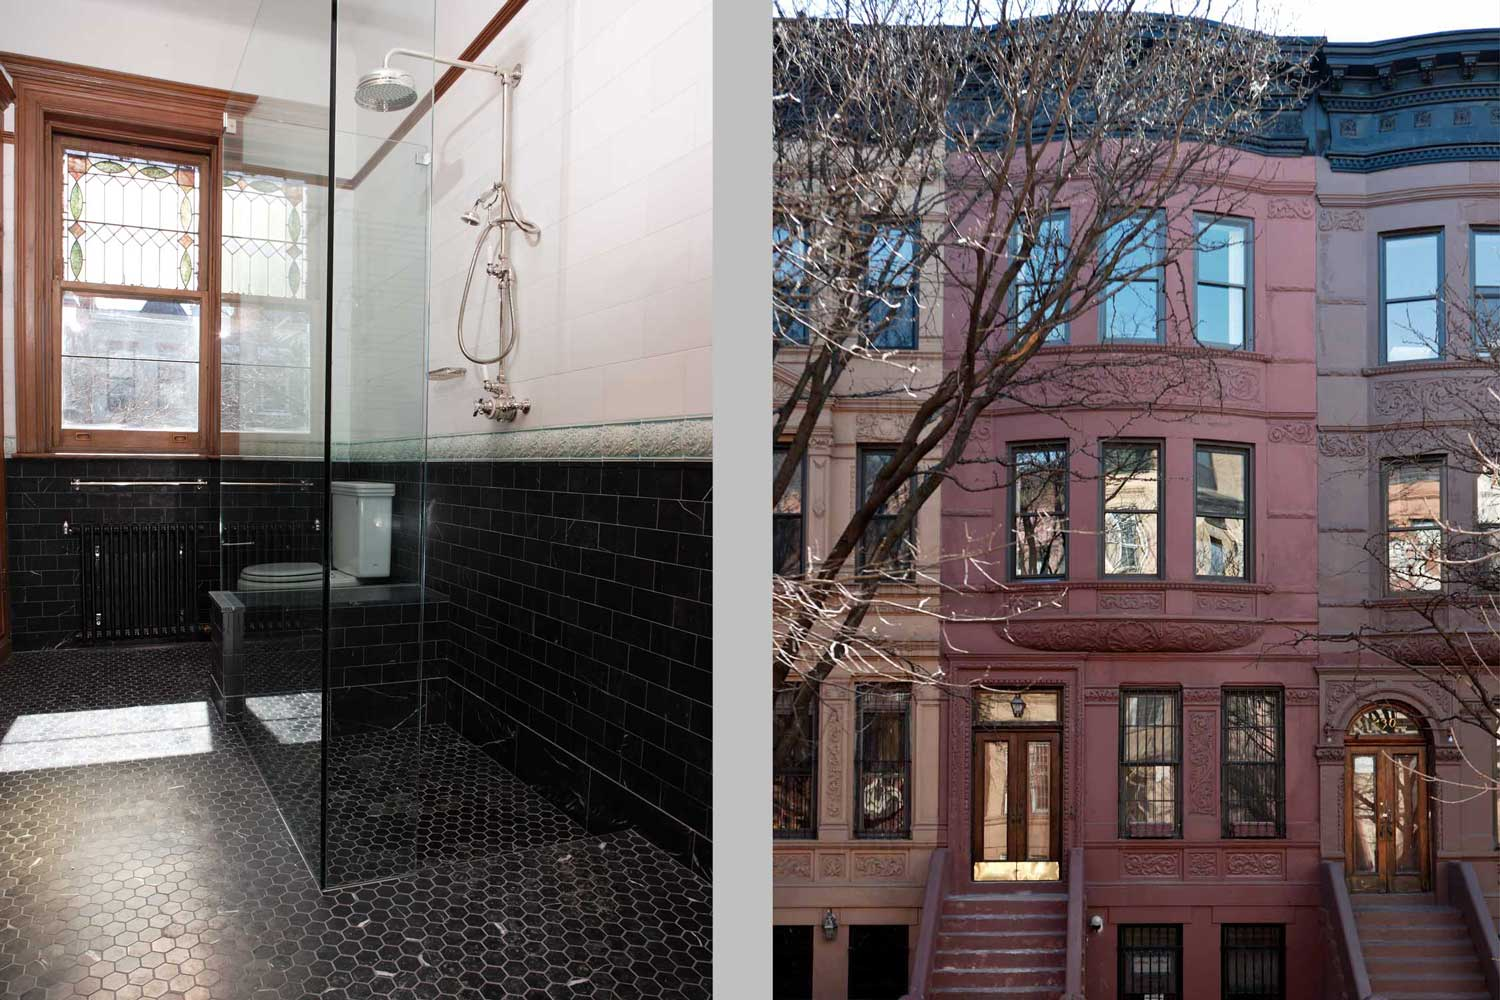 OCV Architects restored and renovated this historic Harlem brownstone after suffering from fire and water damage.